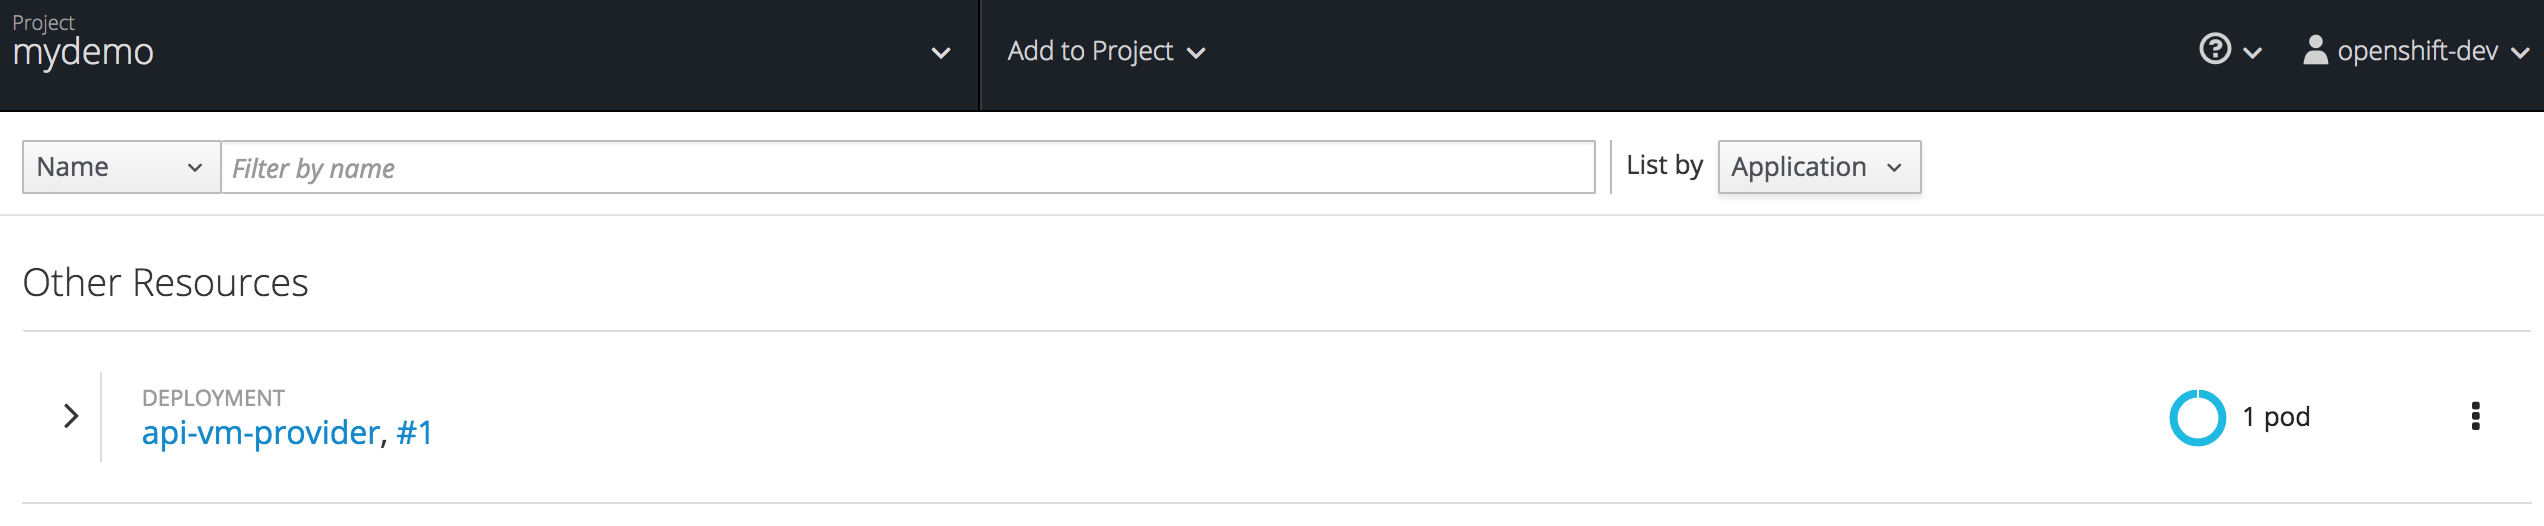 Openshift Project